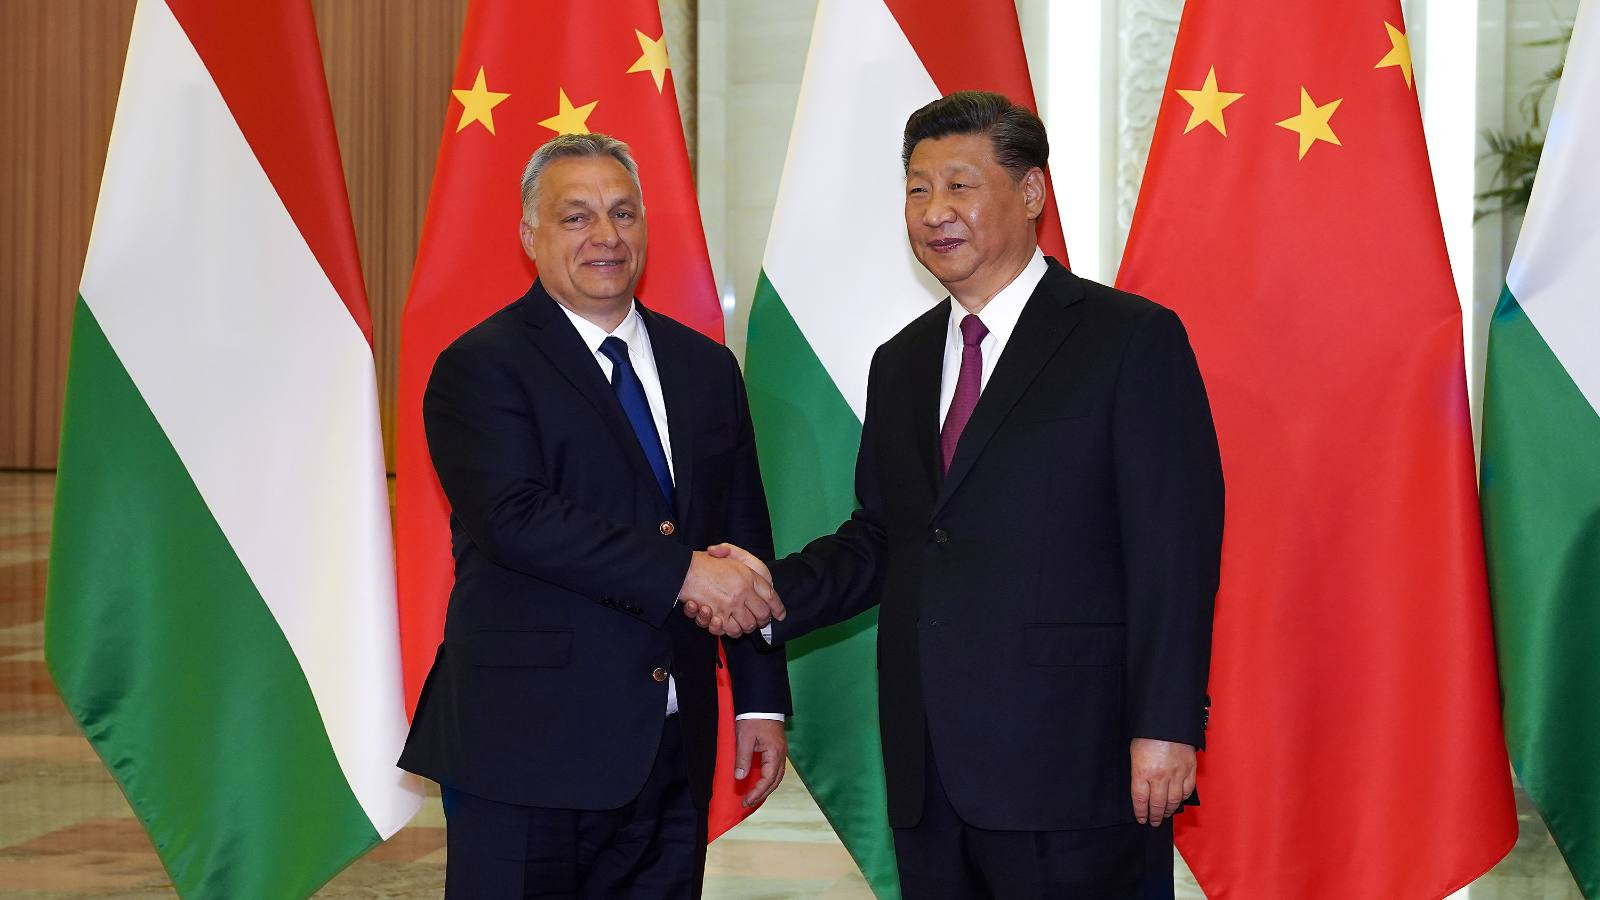 Chinese President Xi Jinping shakes hands with Hungarian Prime Minister Viktor Orban before the bilateral meeting of the Second Belt and Road Forum at the Great Hall of the People, in Beijing, China April 25, 2019.